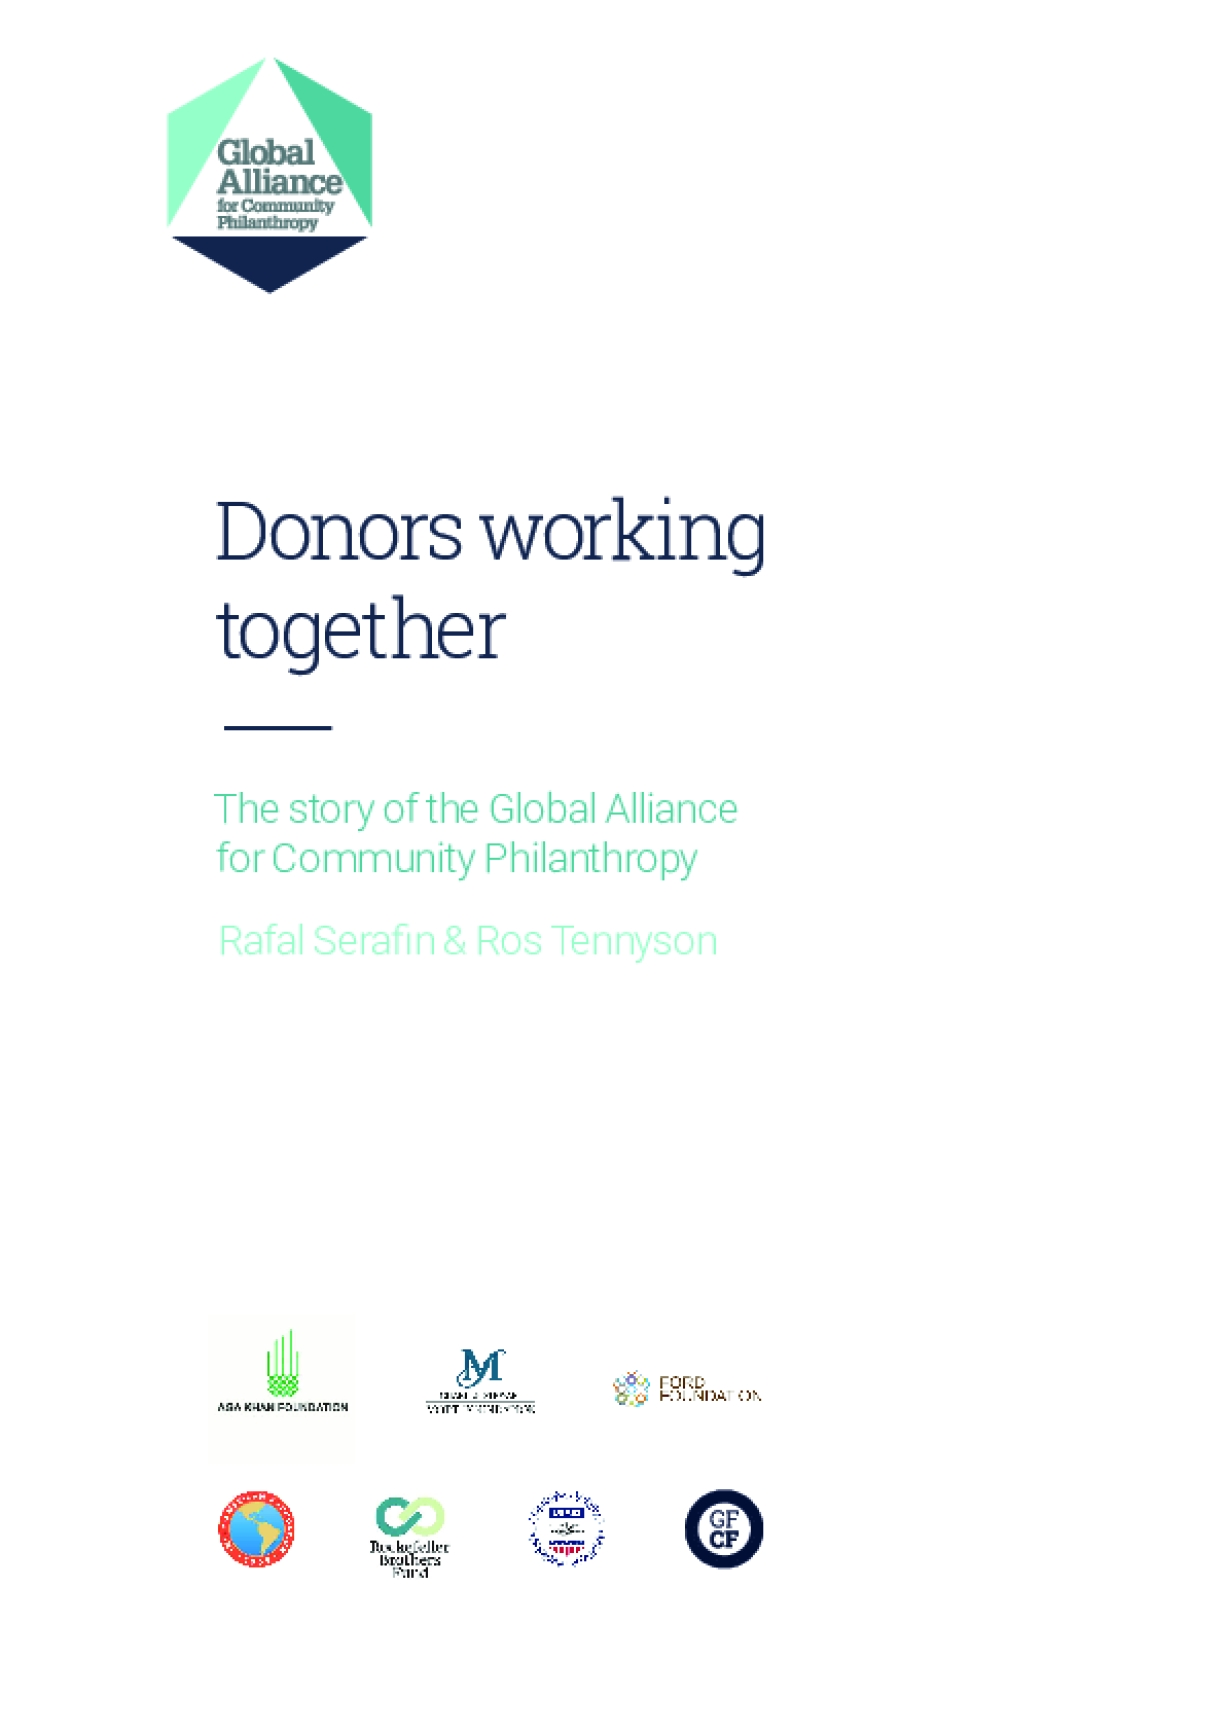 Donors working together: The story of the Global Alliance for Community Philanthropy